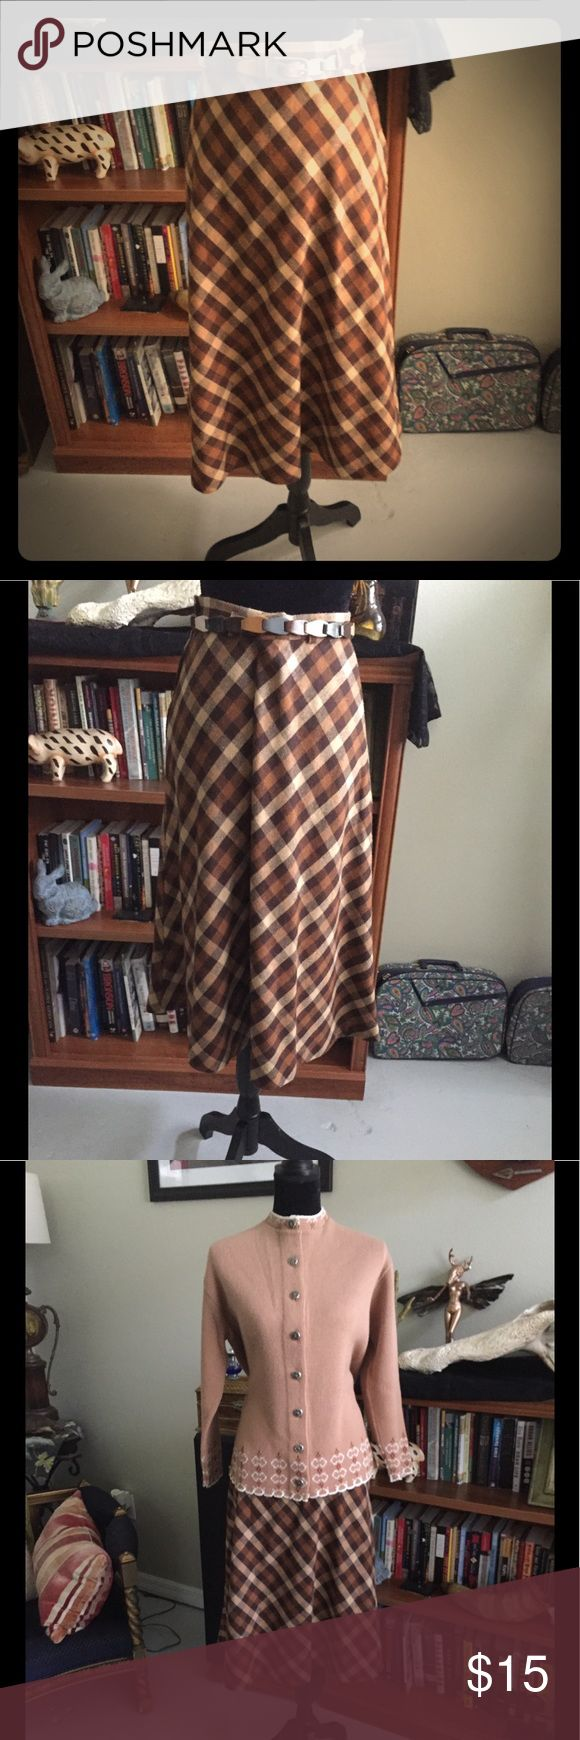 Vintage 60s Summit of Boston Wool Plaid Skirt M Vintage 60s Summit of Boston Brown Wool Plaid Skirt. See Photo For Waist Measurement. Good Vintage Condition. Authentic Original Vintage Style Skirts Midi